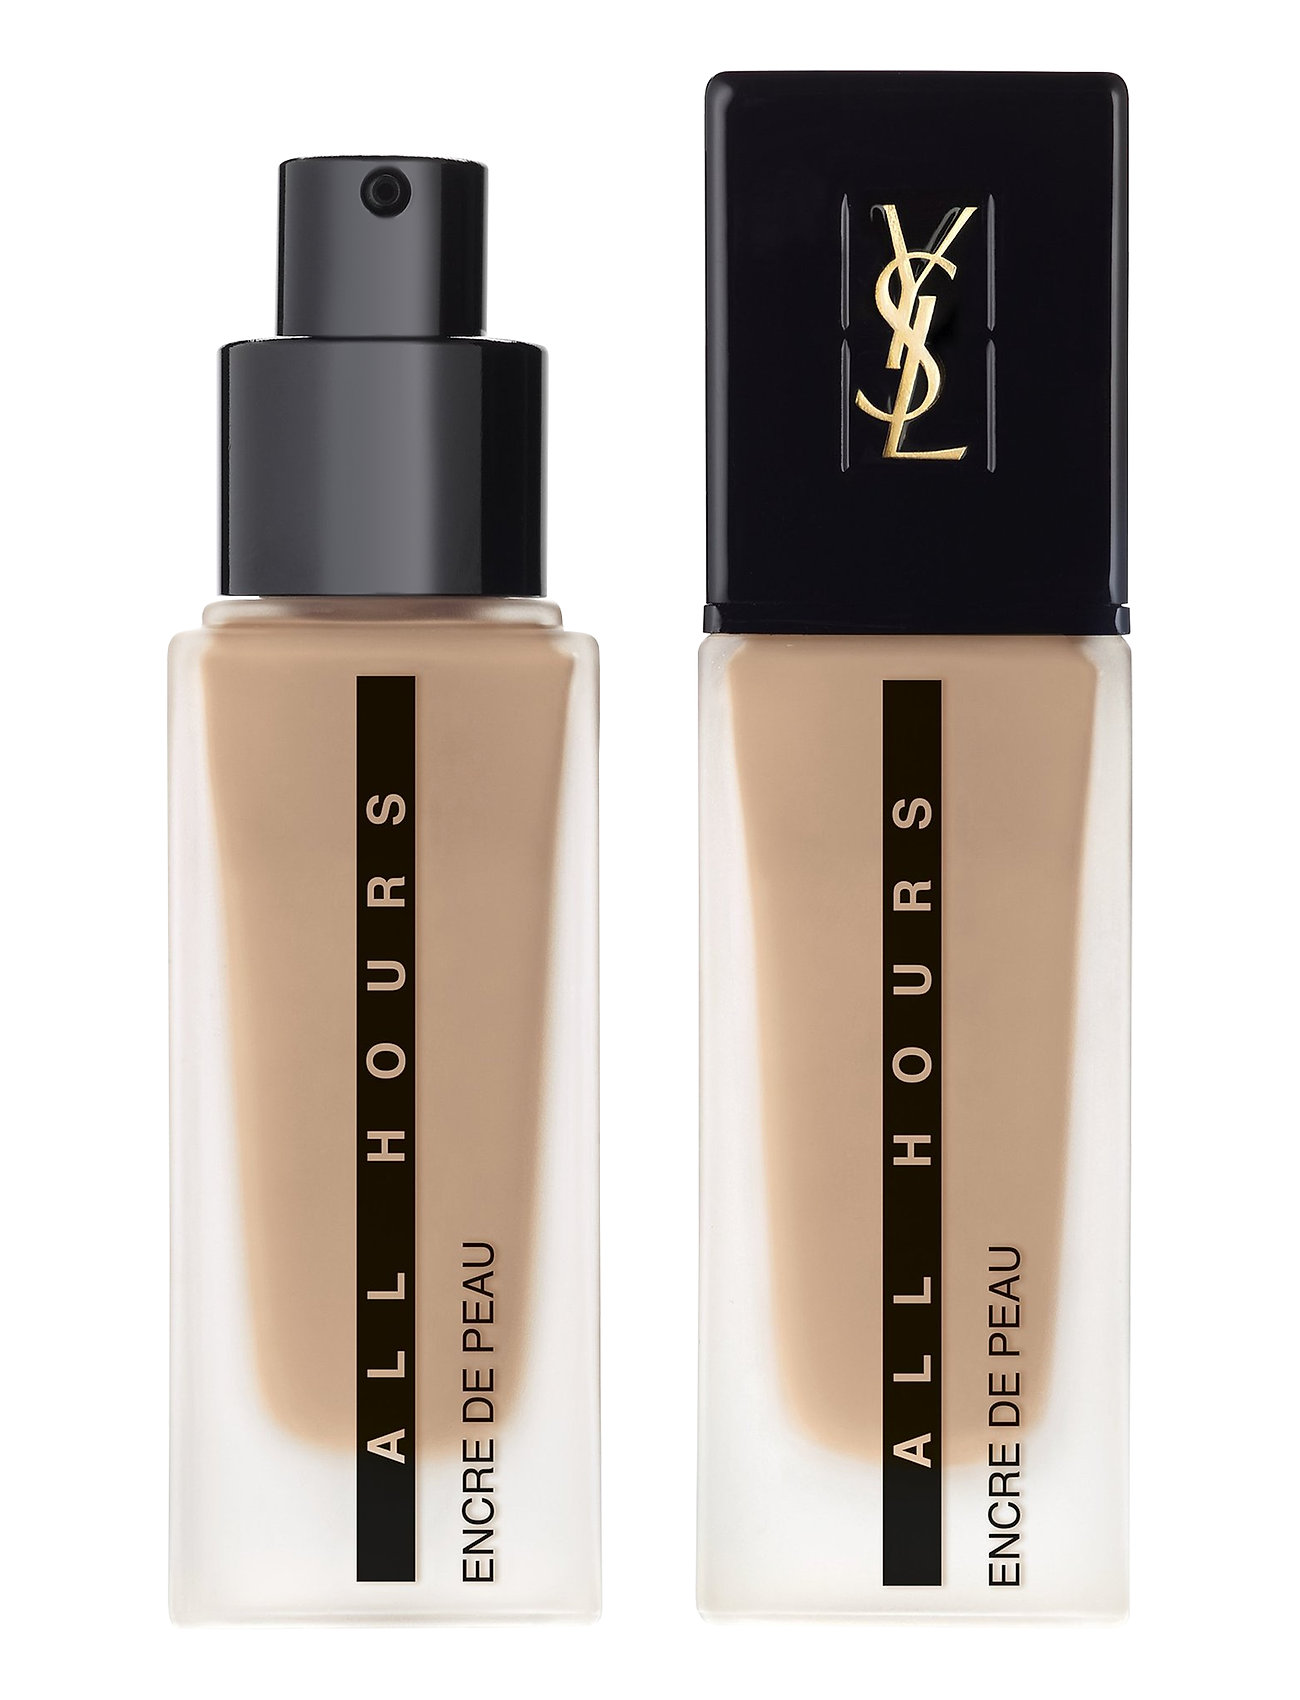 yves saint laurent – Encre de peau all hours b40 25 ml fra boozt.com dk